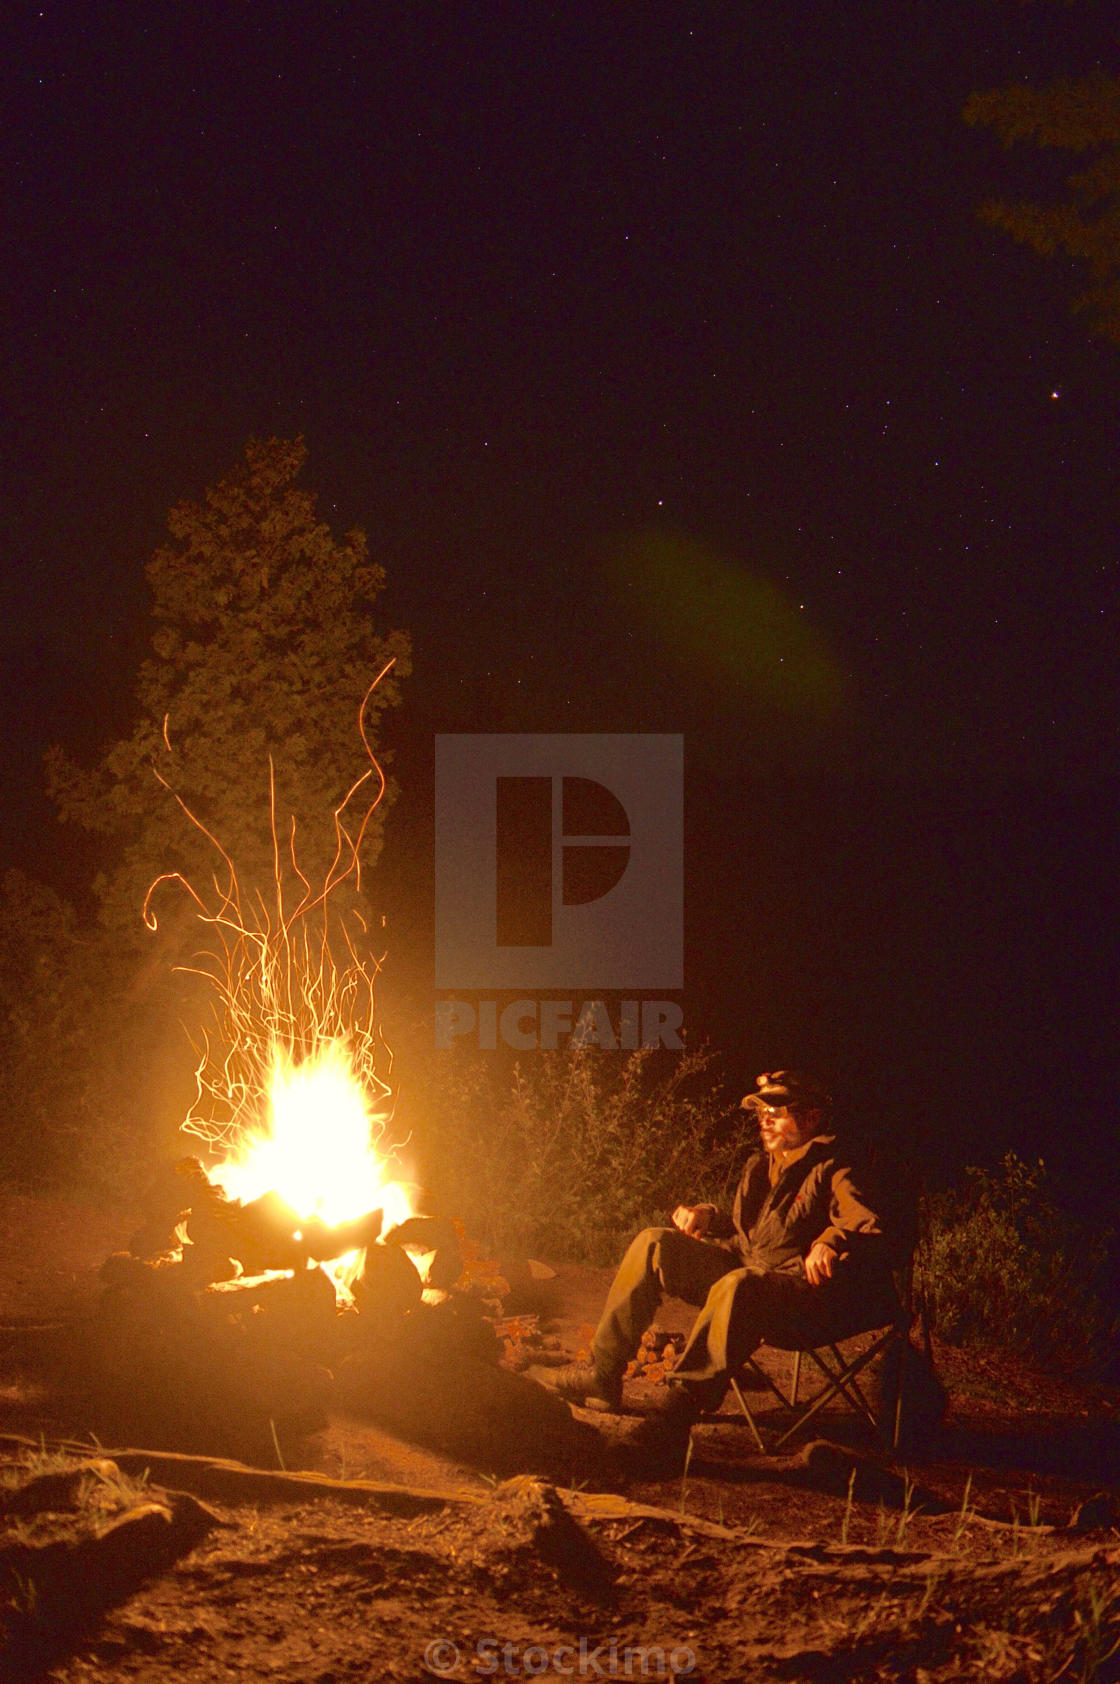 Person In Chair Looking At Night Campfire License